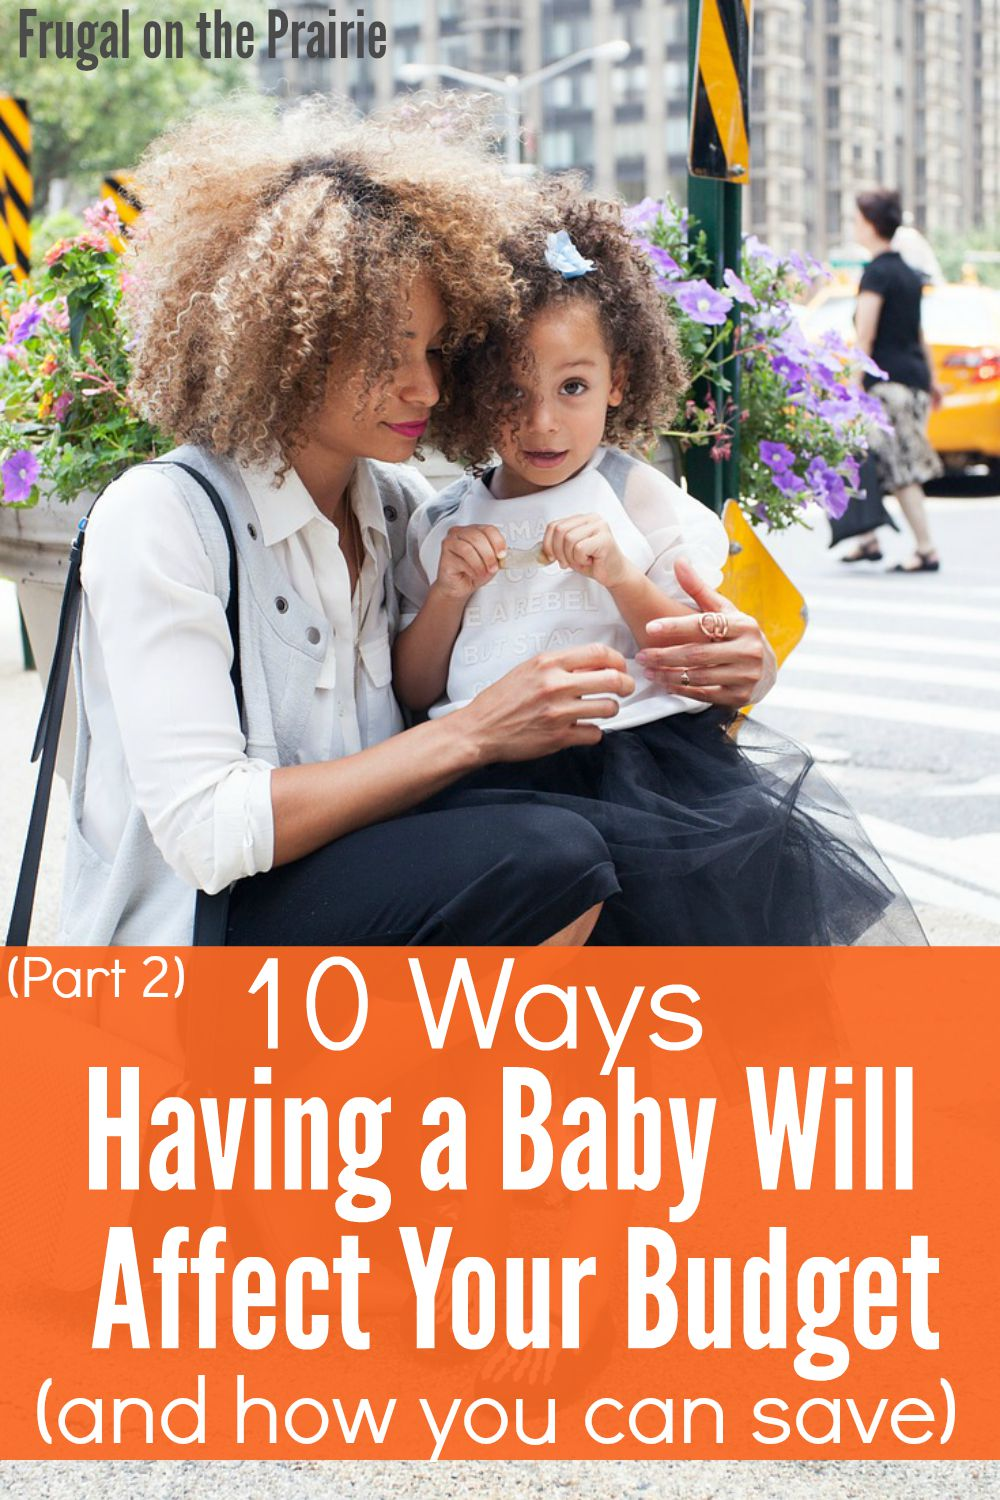 Are you worried about budgeting for a baby? Here are 10 ways having a child will affect your budget, and how you can save money. Part 2 of 2.